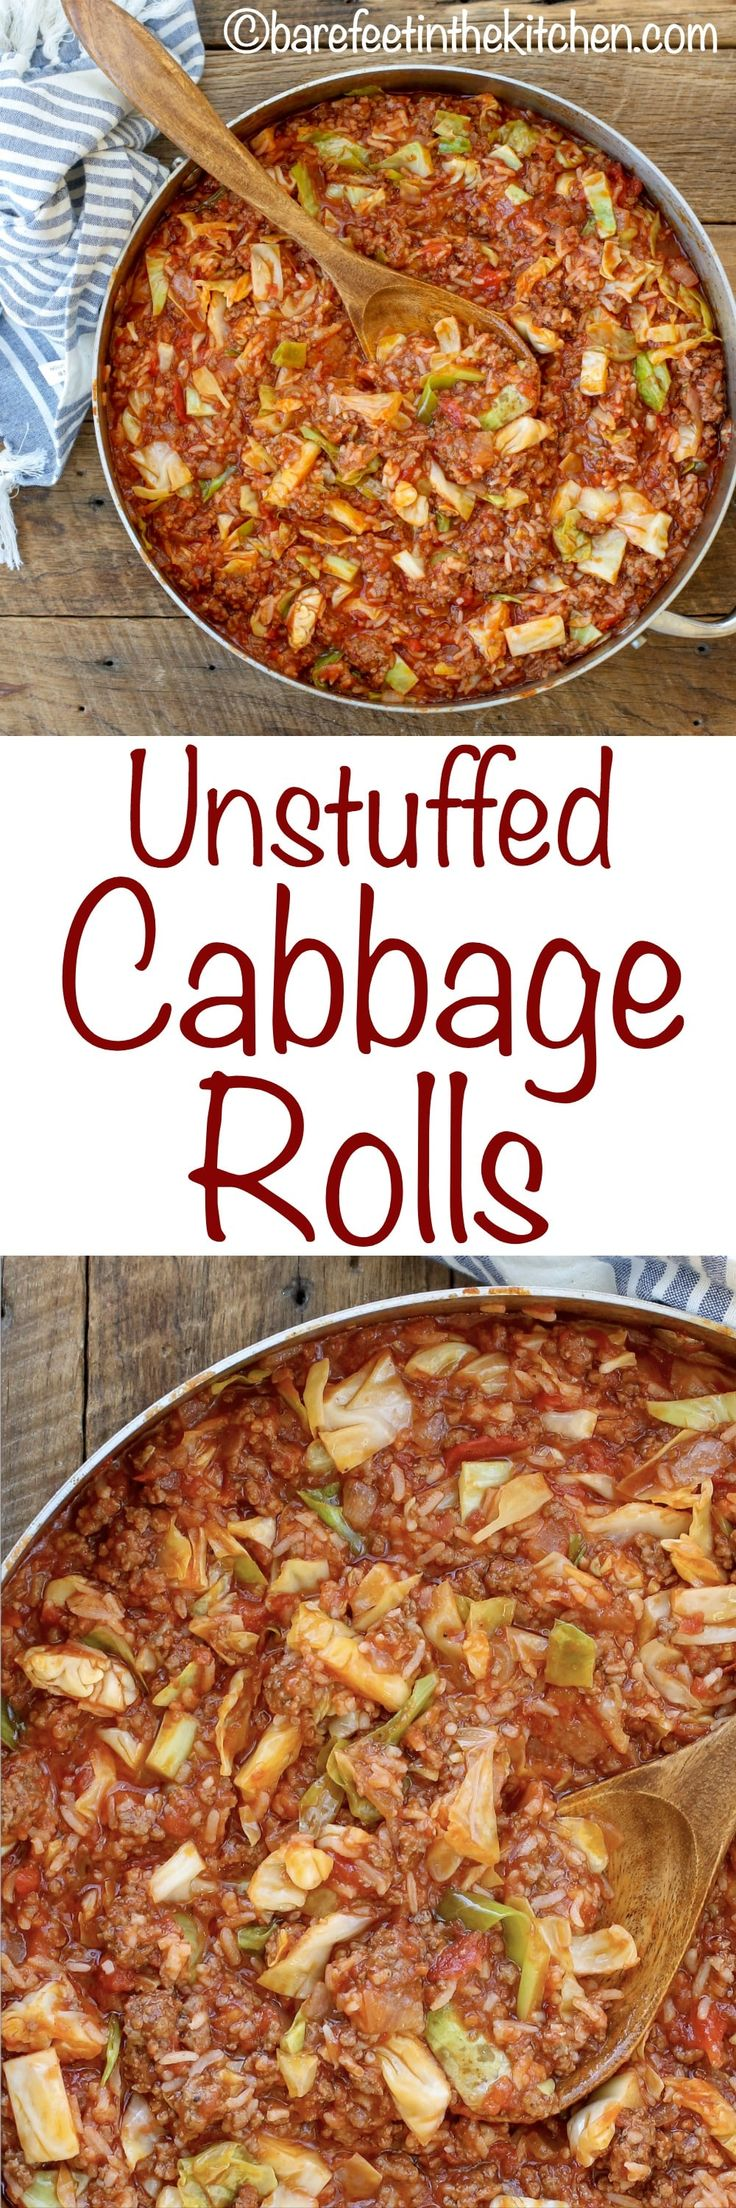 Unstuffed Cabbage Rolls are a 20 minute meal that tastes just like the classic cabbage rolls you love! get the recipe at barefeetinthekitchen.com